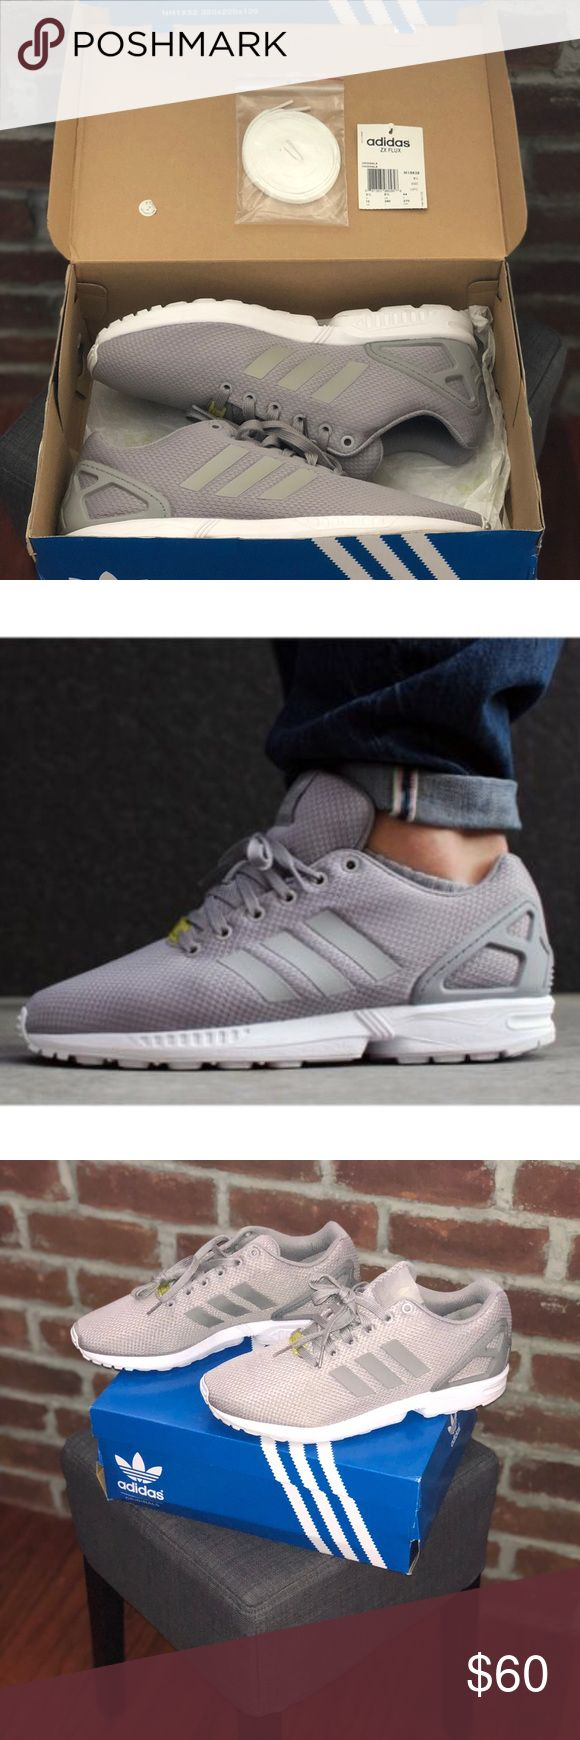 Adidas ZX Flux adidas unveils a new solid grey and white rendition to its popular ZX Flux model. Sporting a gray mesh-lined upper with a complementing gray heel cage and laces, the latest adidas ZX flux iteration features a contrasting white midsole, which is fitted with the brand's signature lightweight cushioning. Minimal branding adds to the refined aesthetic as a gray, contoured outsole finishes the classic runner silhouette. adidas Shoes Athletic Shoes